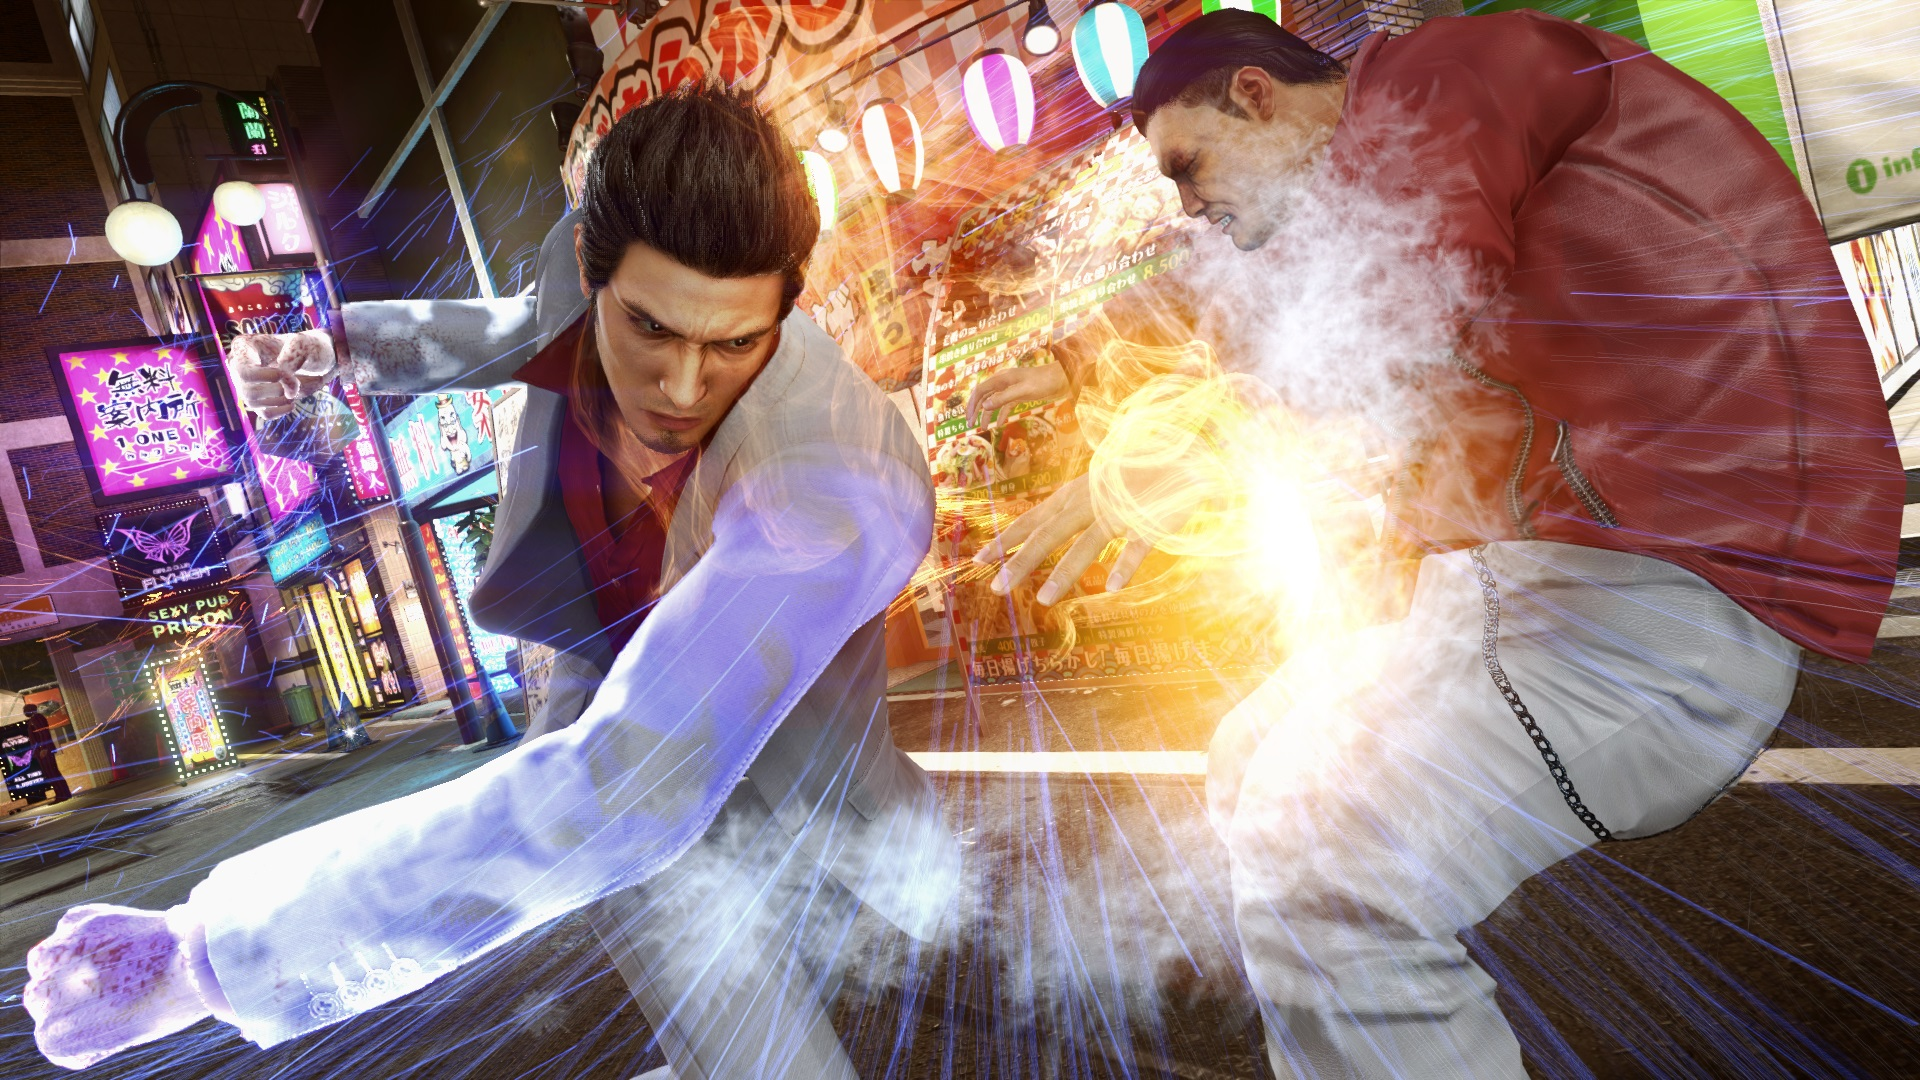 Series producer hints Yakuza 3, 4, and 5 could be coming to